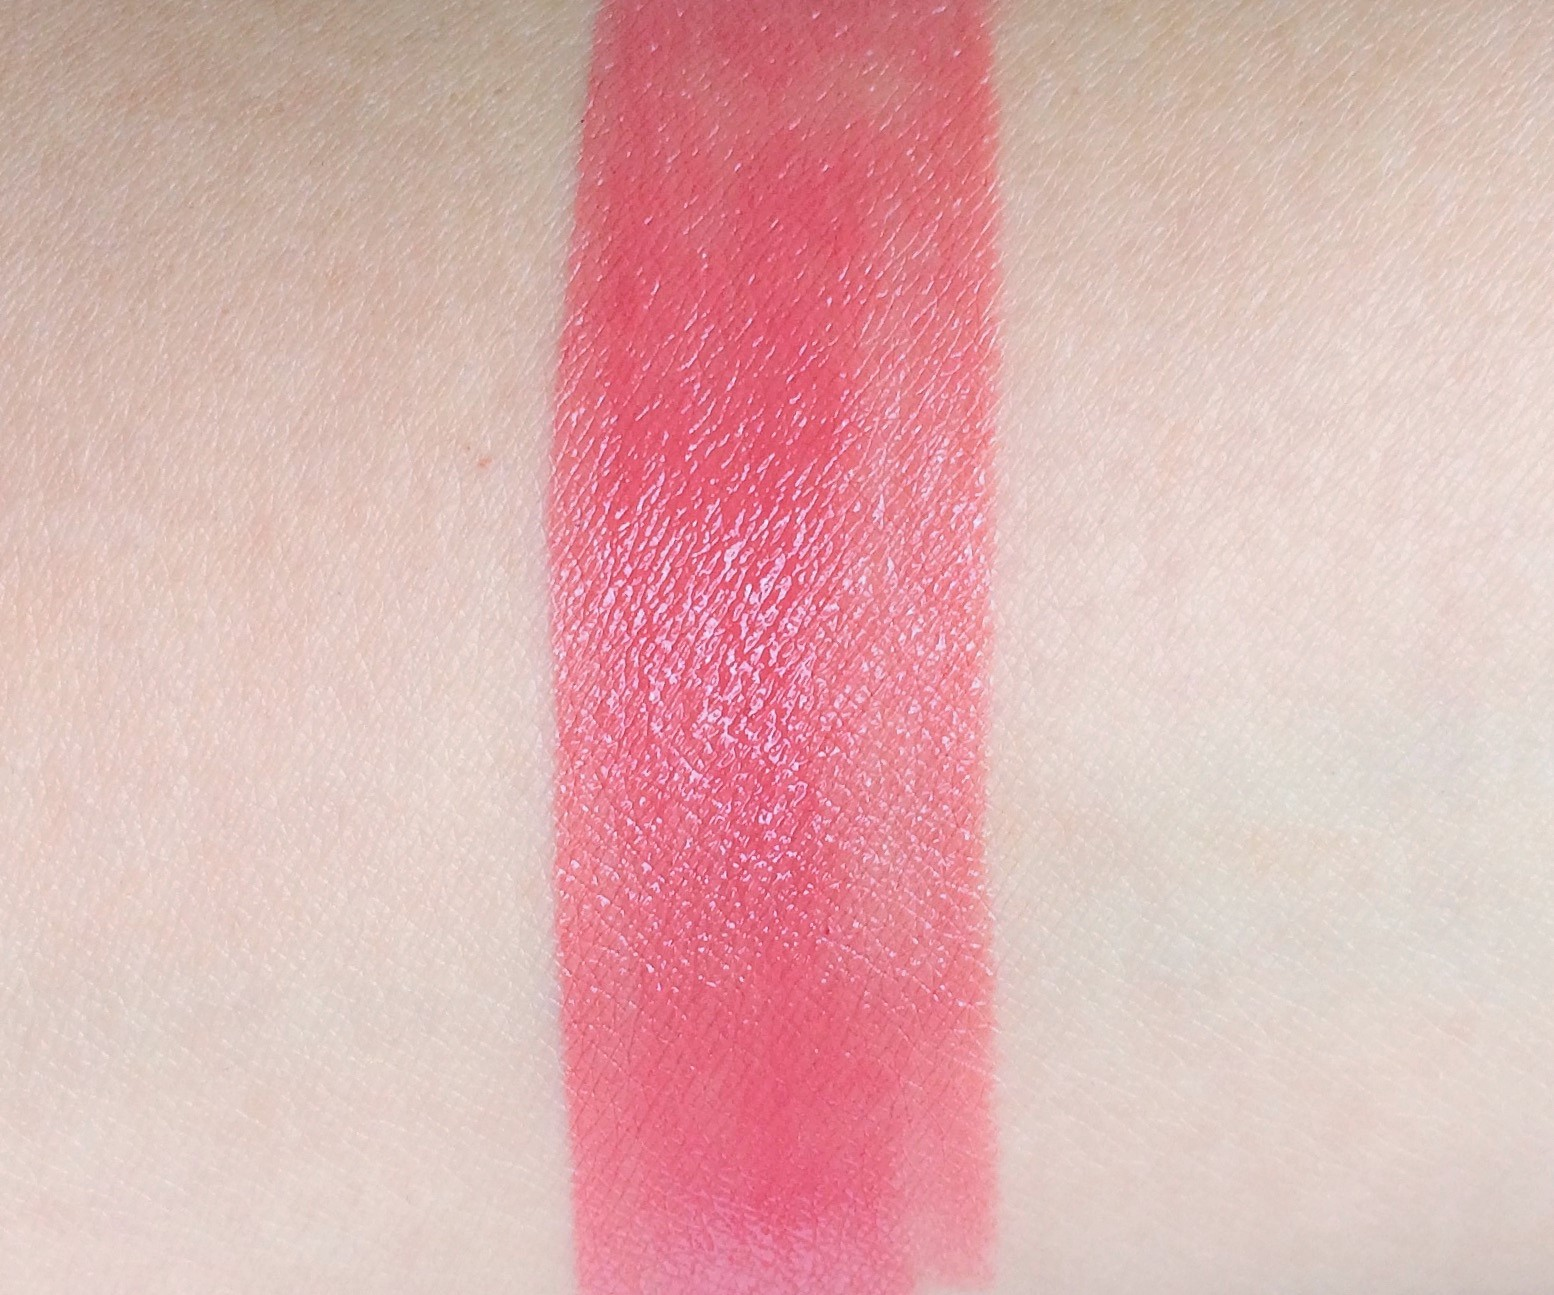 Review Maybelline Secret Blush (74) Shine Compulsion Lipstick